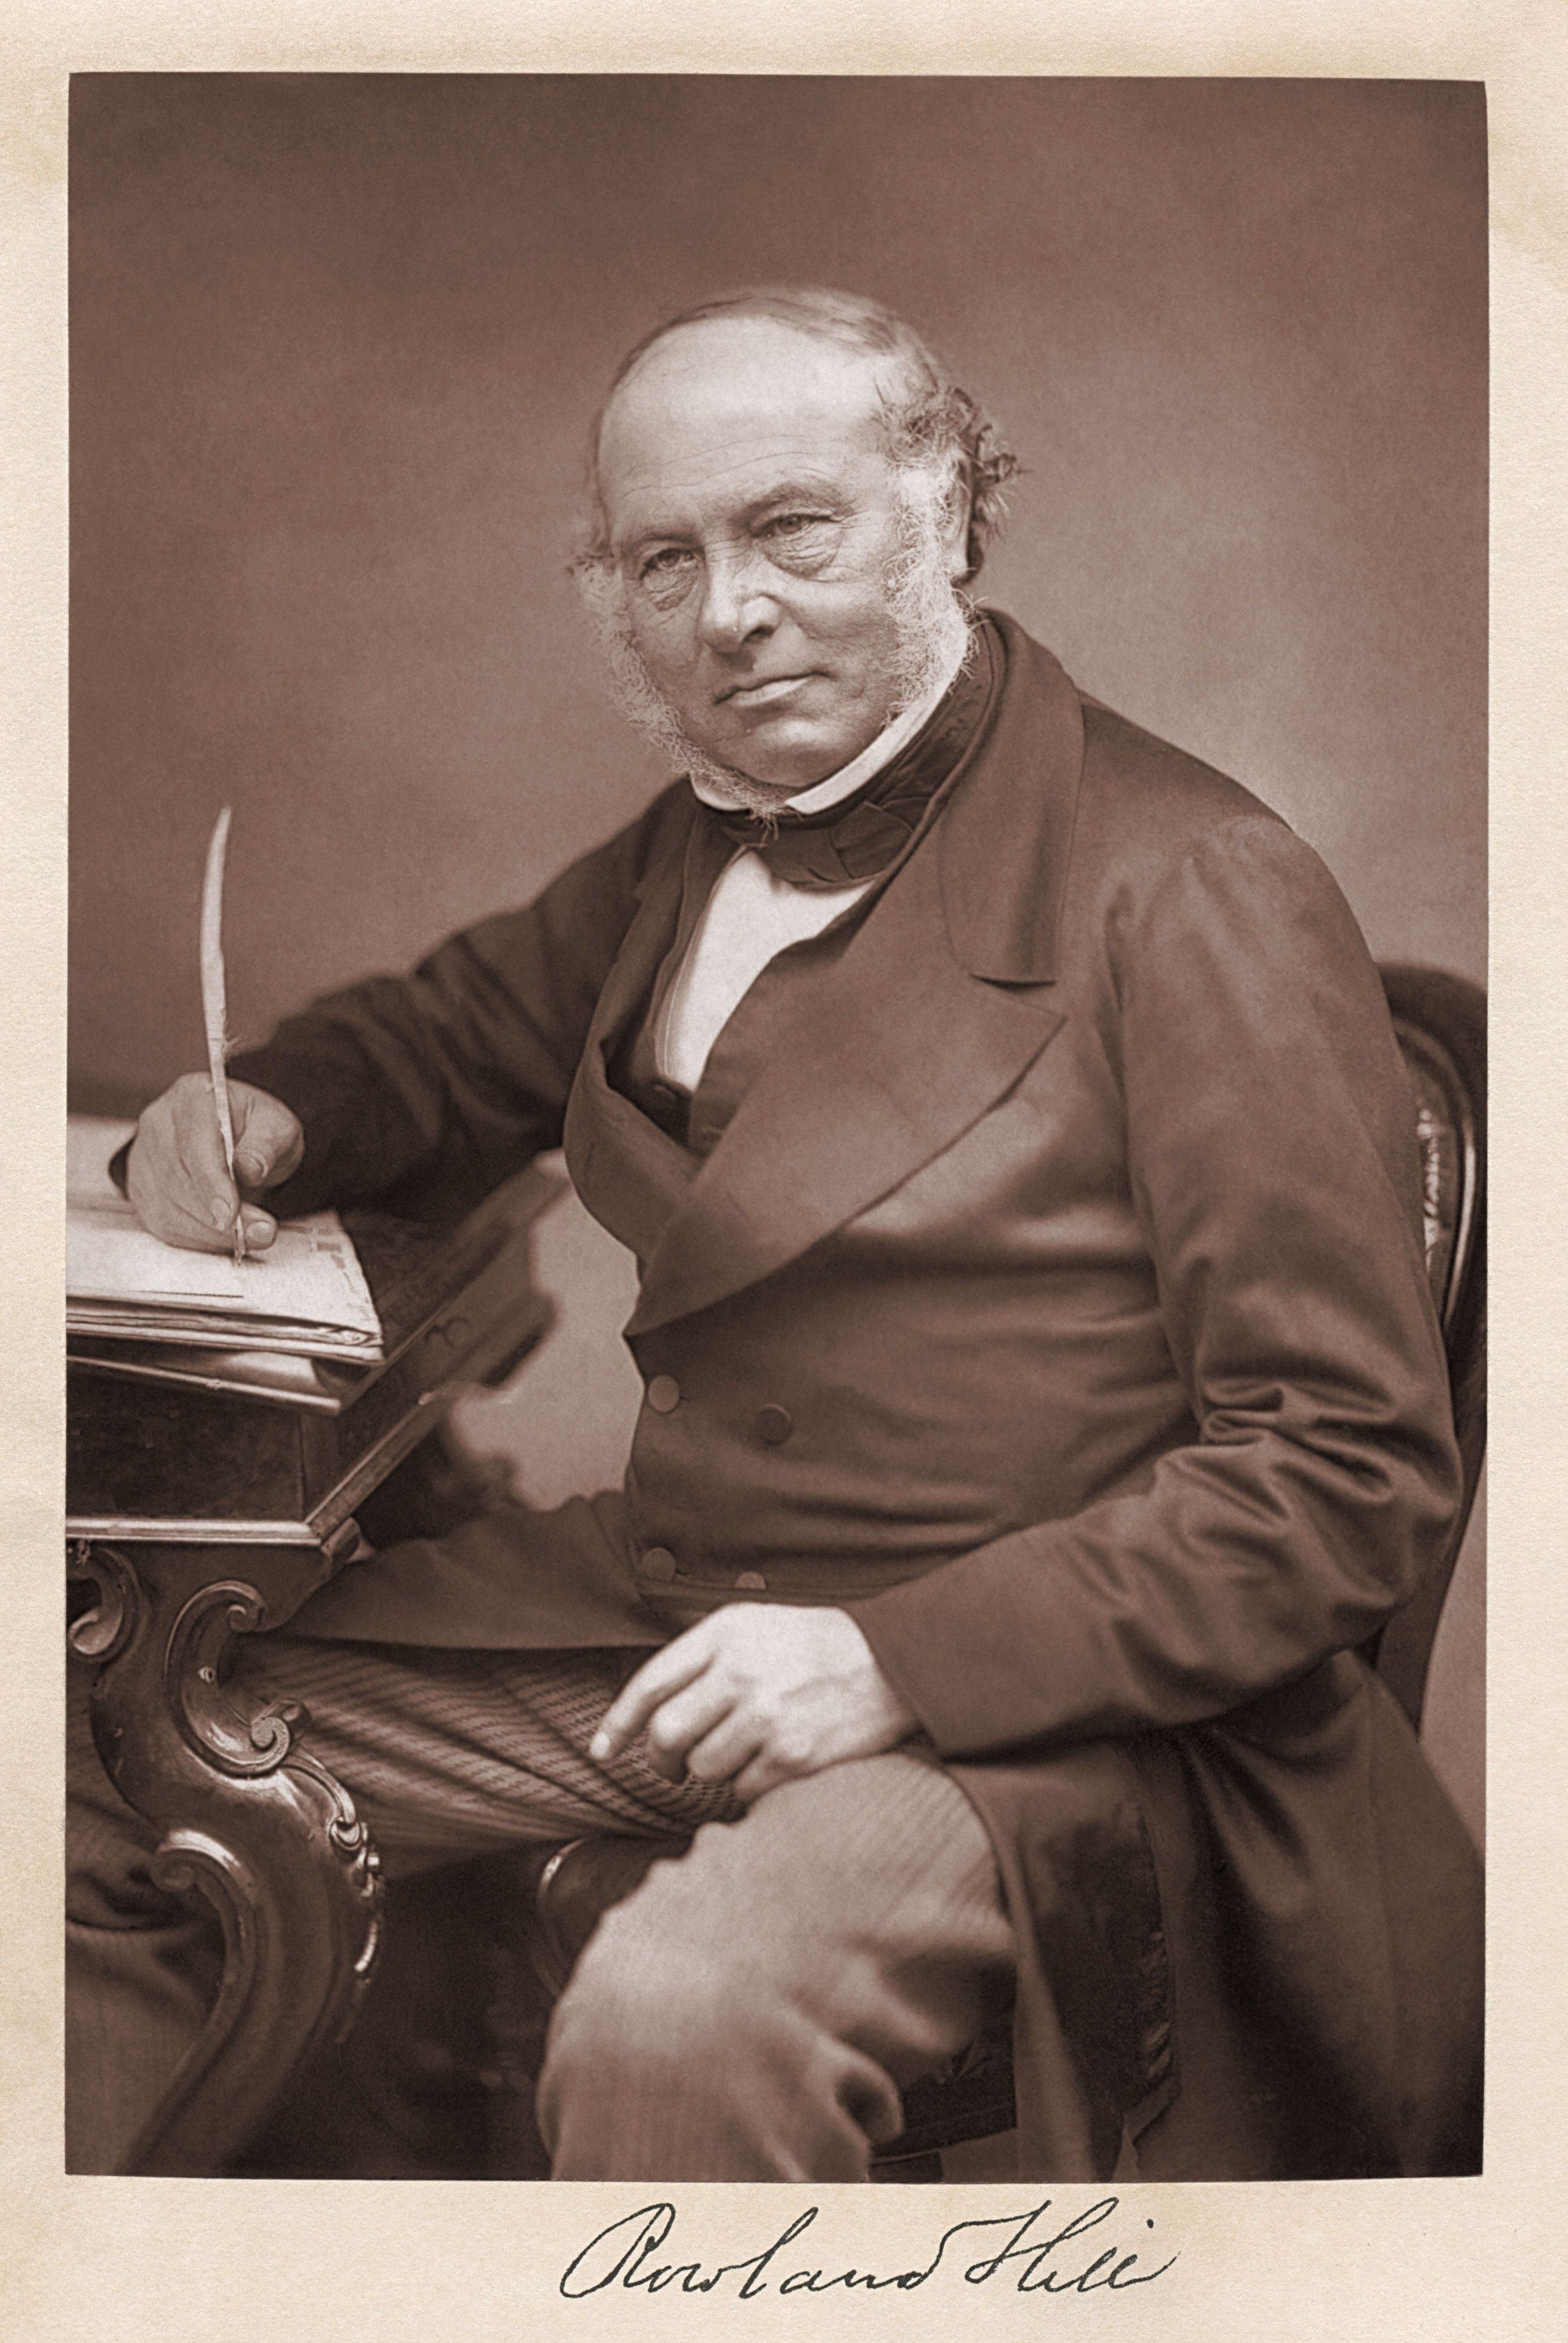 Photo and signature of Rowland Hill, as reproduced on the frontispiece of